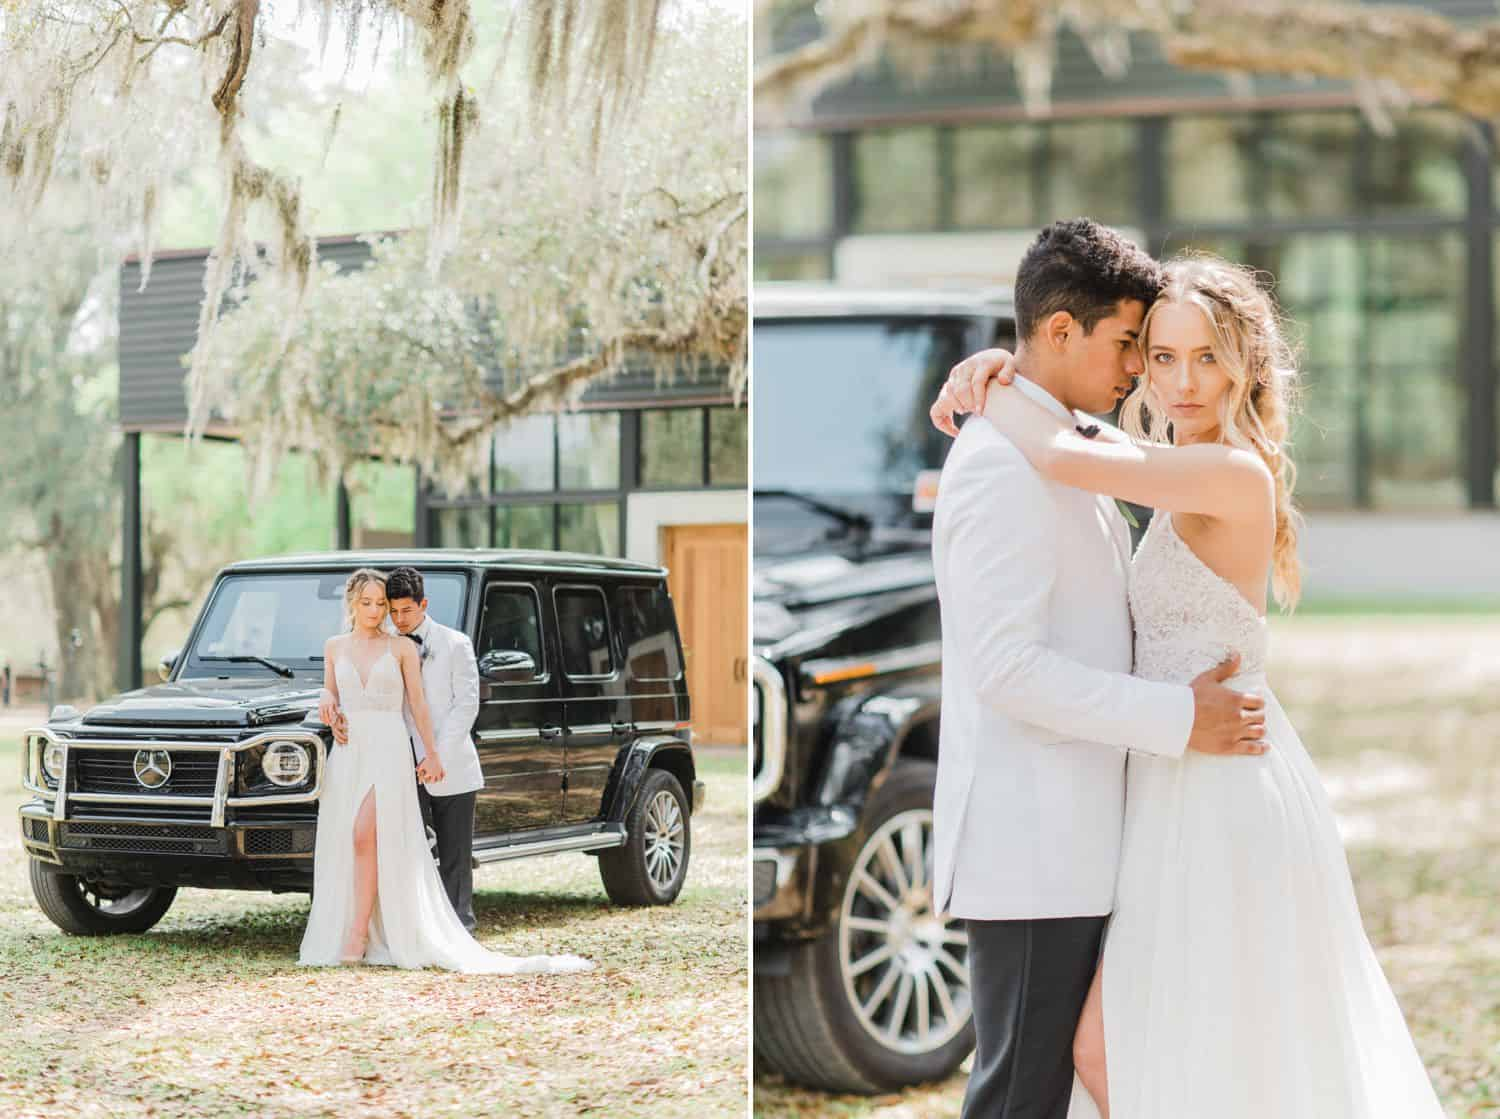 Bride and Groom Portraits Under Spanish Moss at Botanical Themed Wedding: Get Photography Clients with Styled Shoots